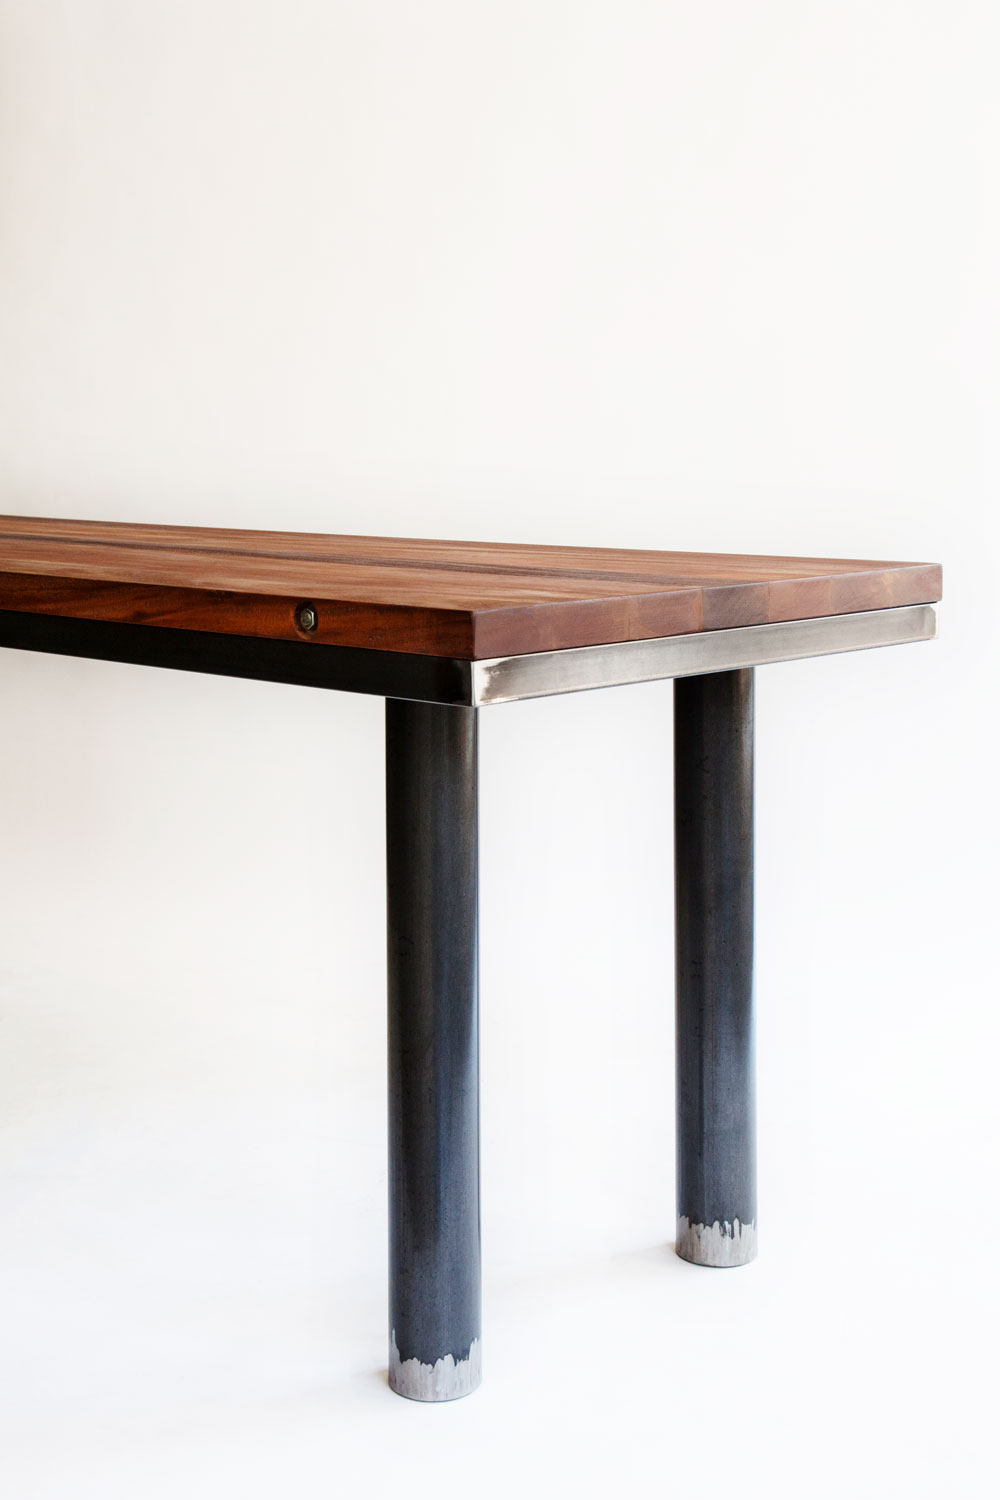 s/r table